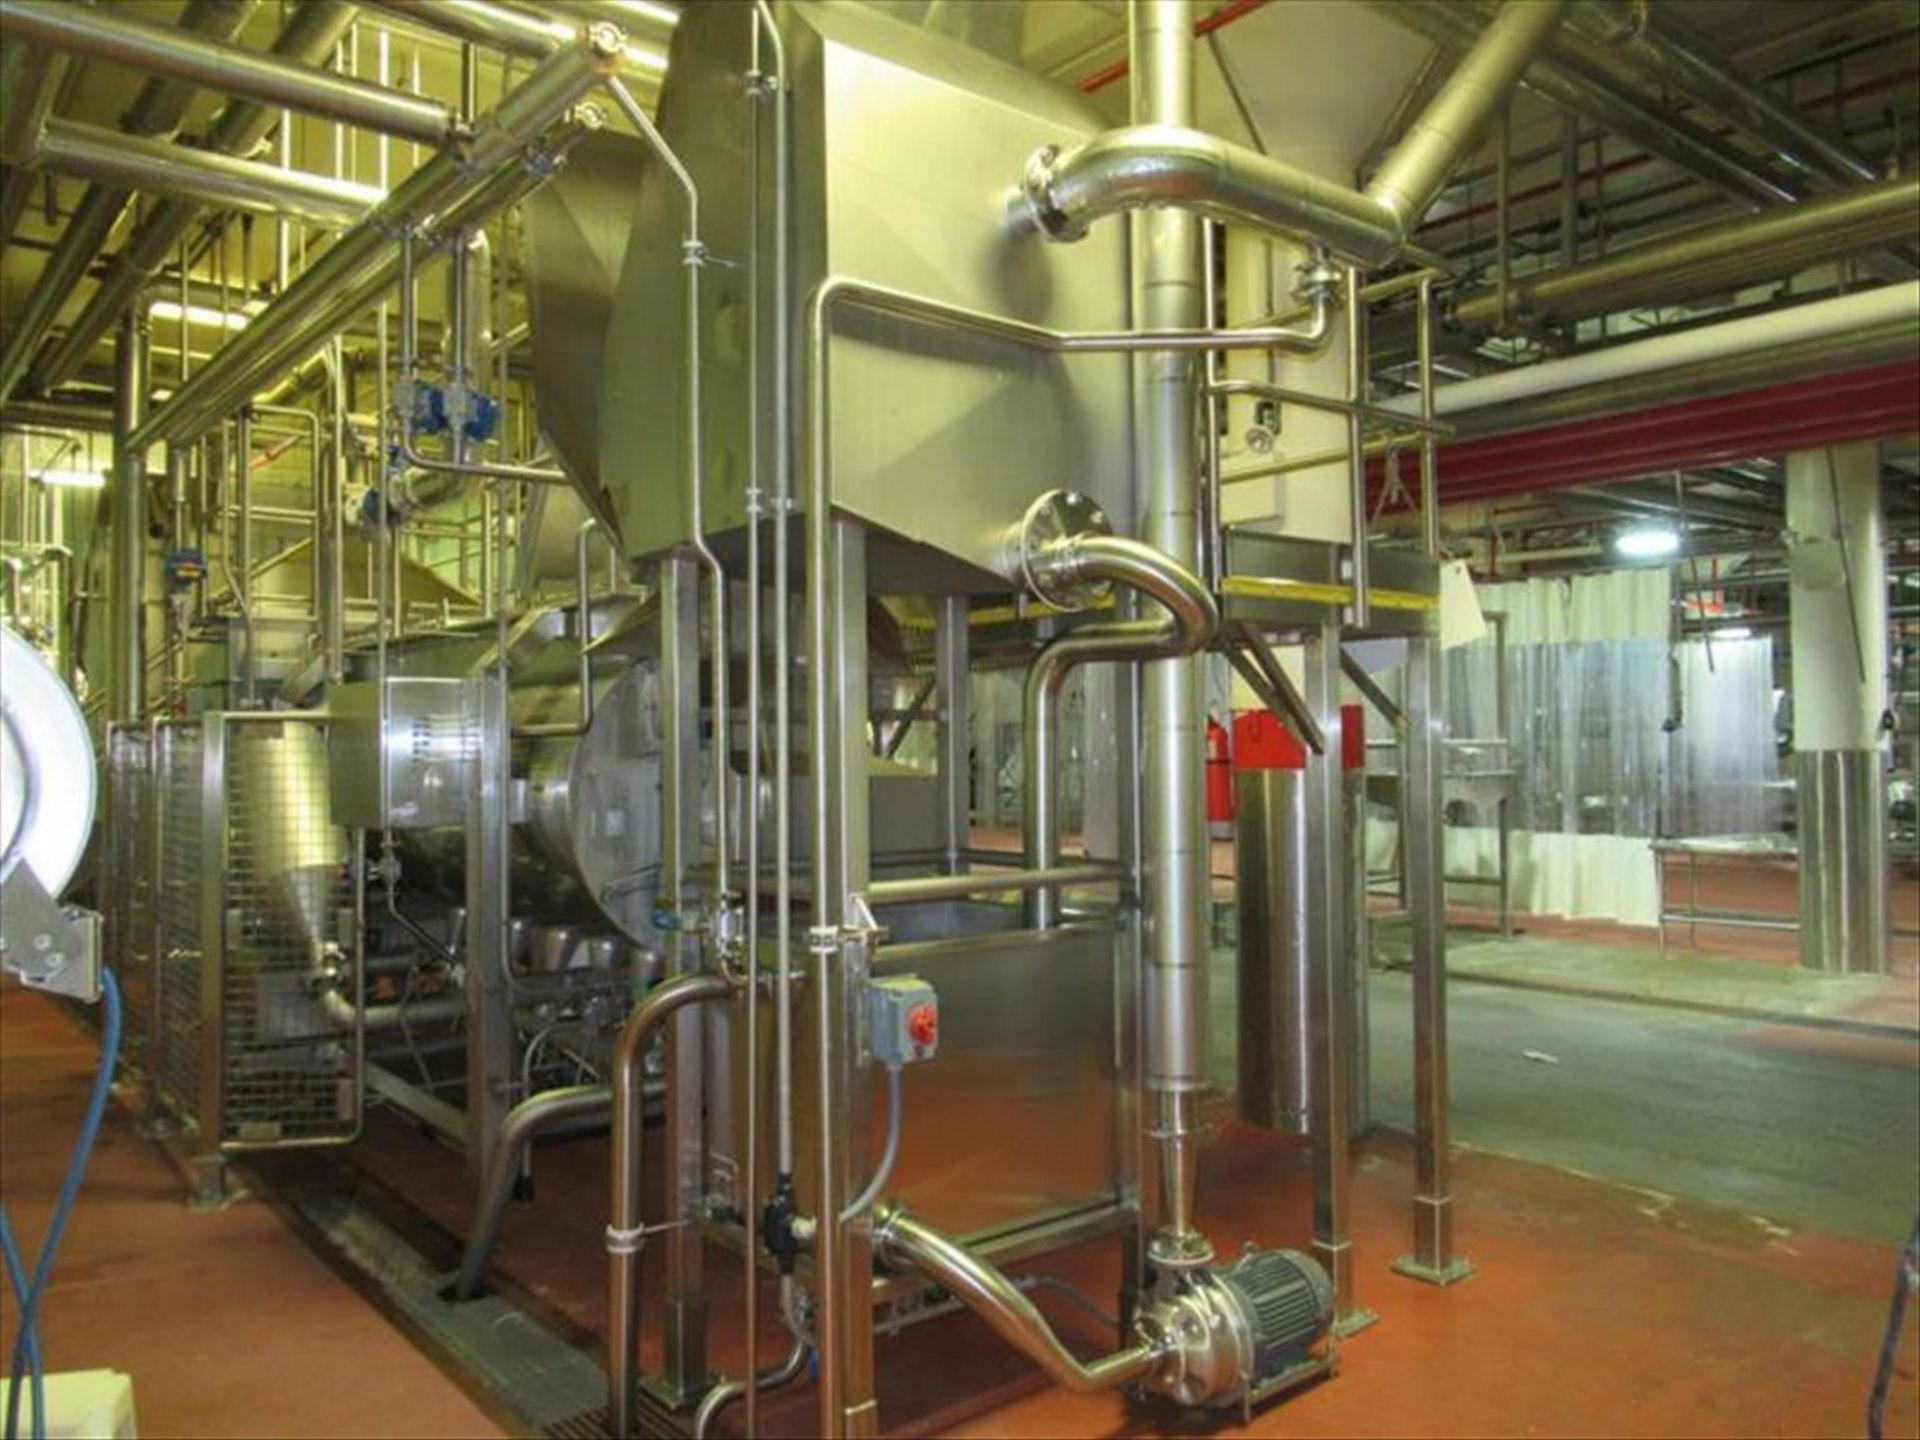 Lot 221 - Andritz hydrosieve mod. no. 5 54 2 36 1 approx 48 in w static screen water separator, all